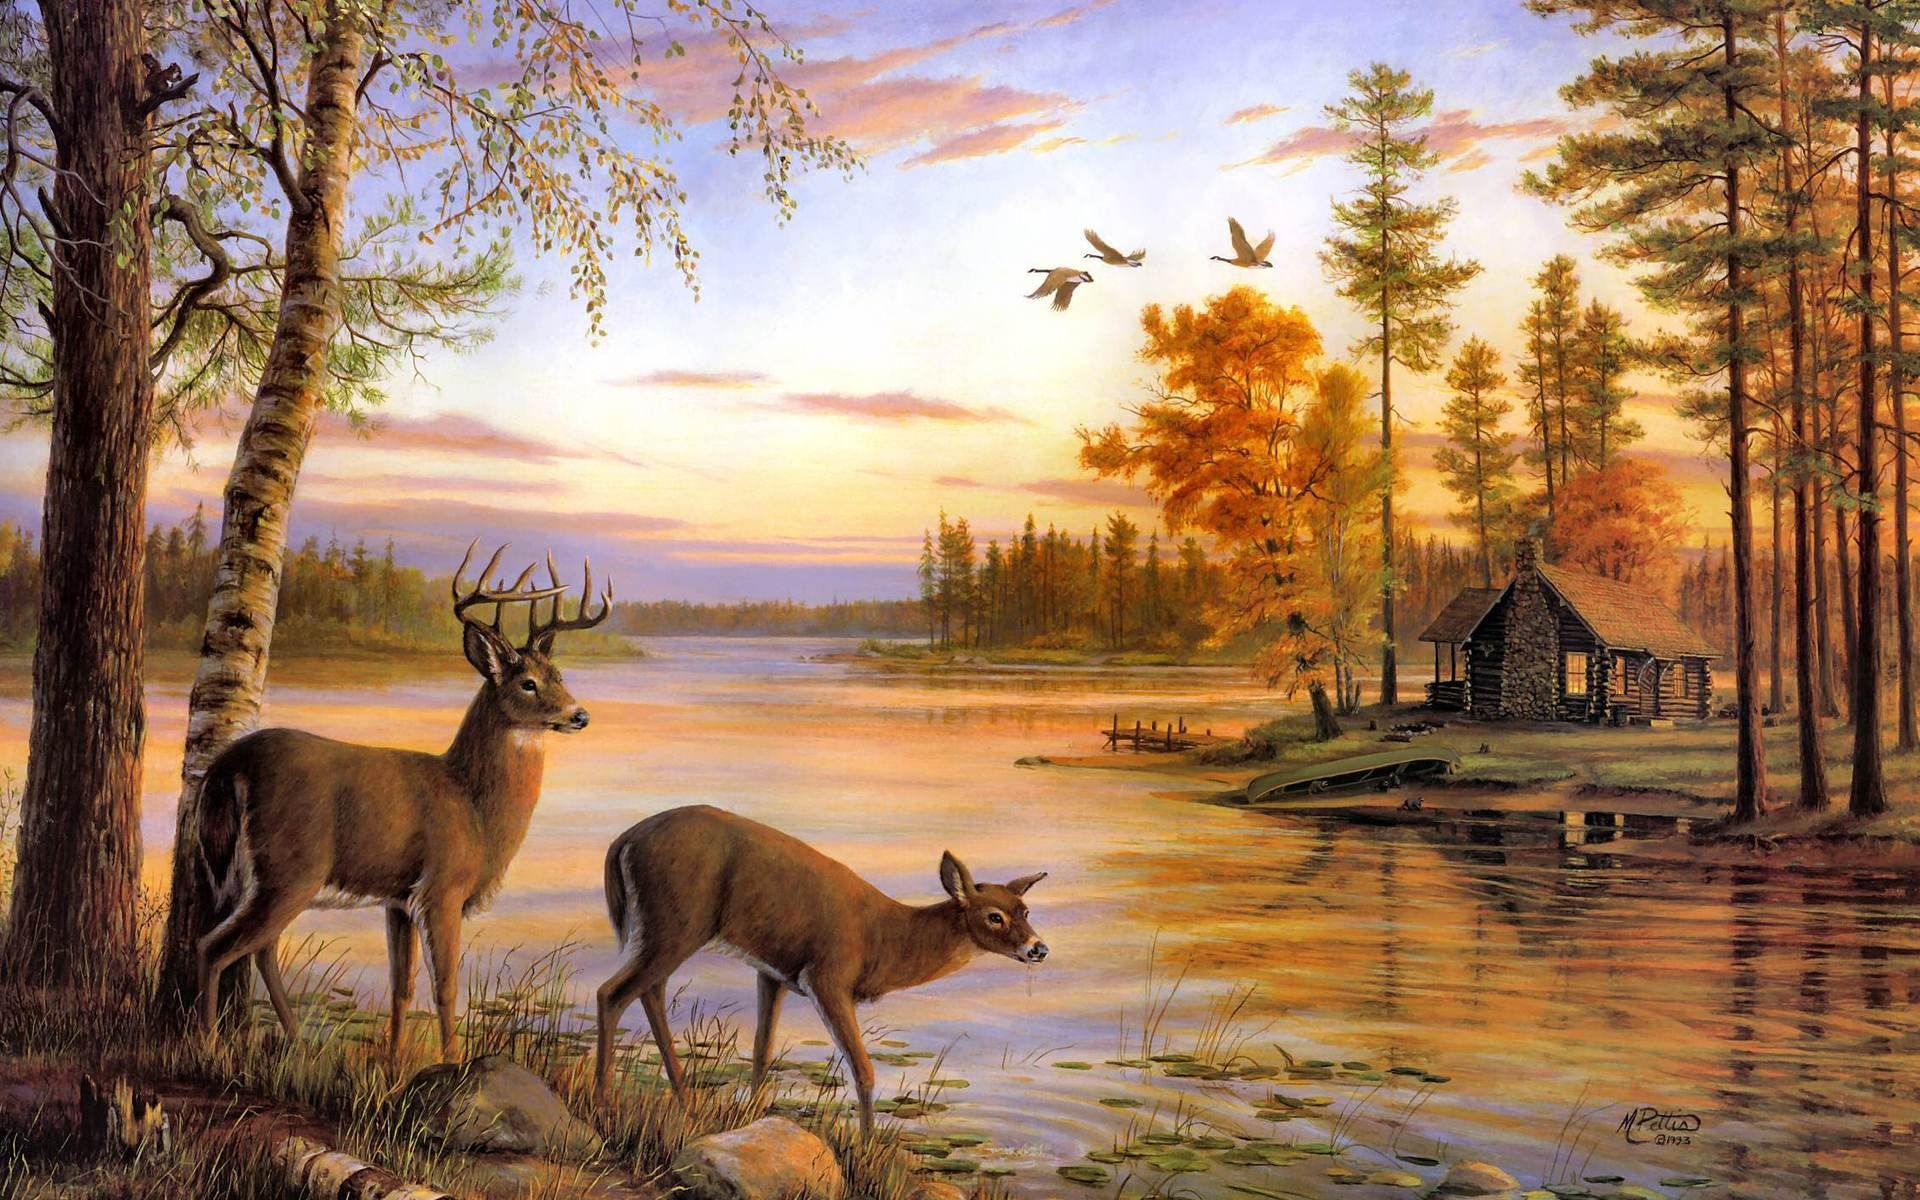 Nature Paintings Images Feeccaecfab